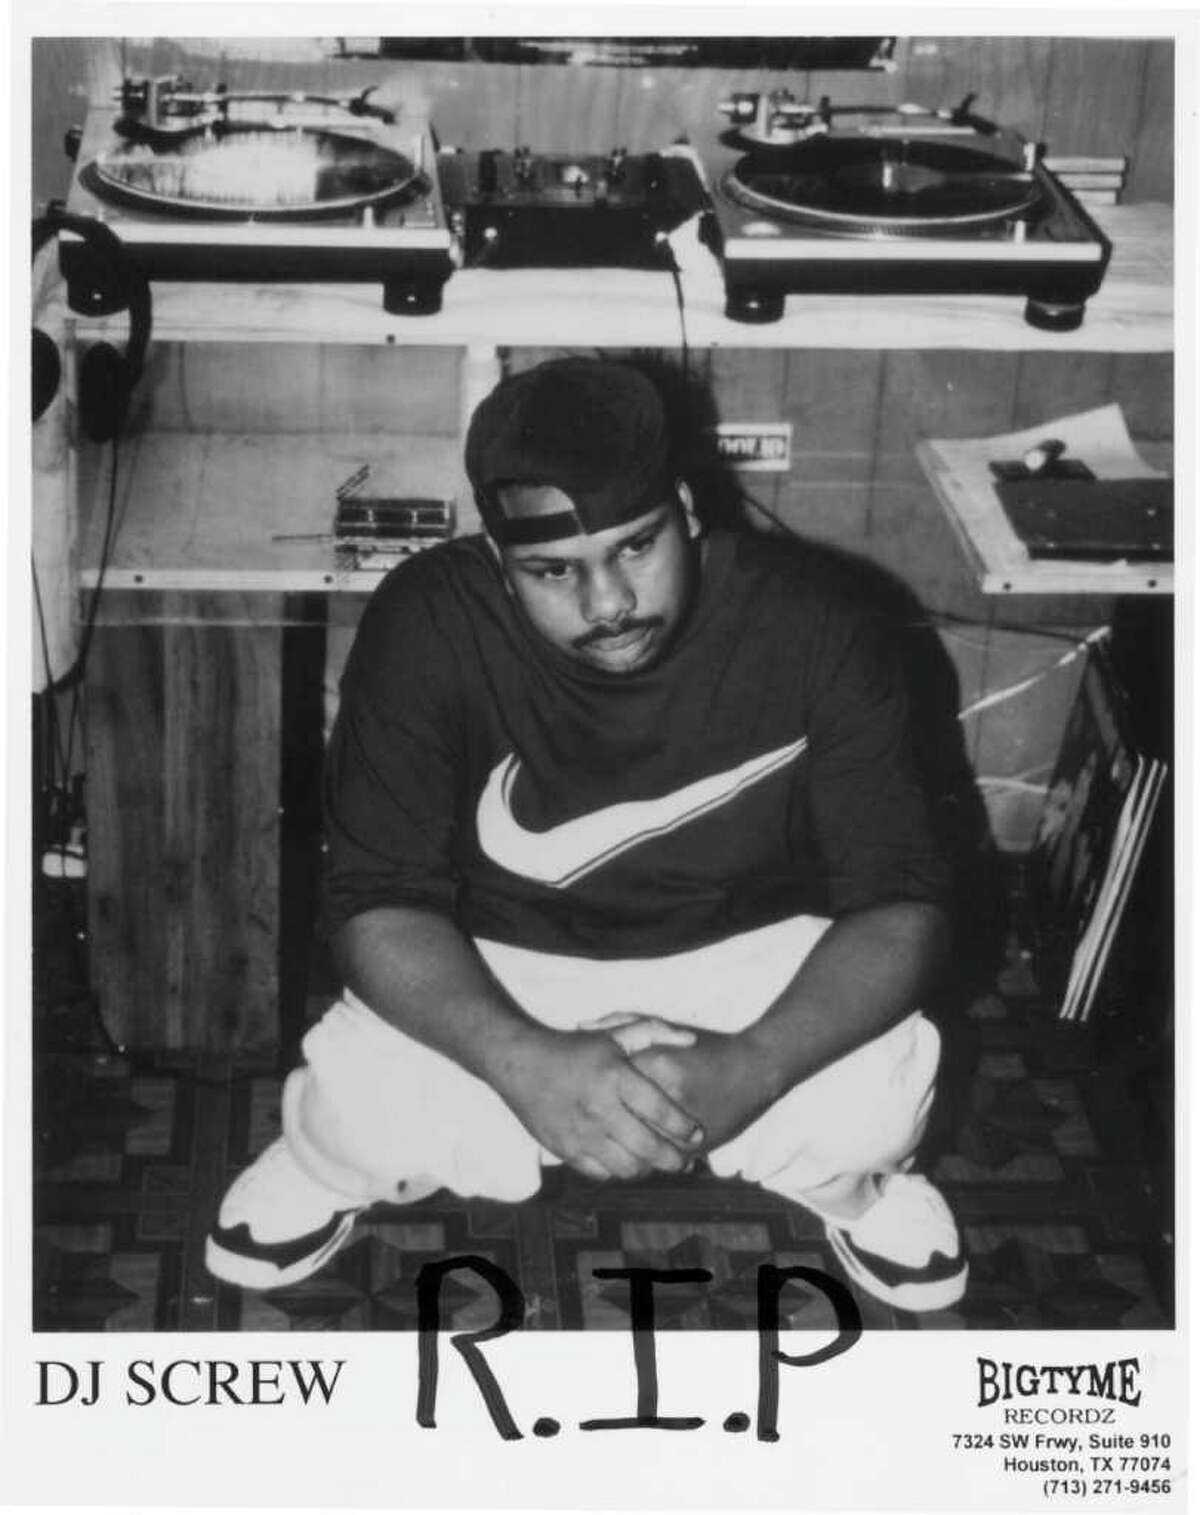 RIP DJ Screw Click through the gallery to read the fond words of Houston rappers about DJ Screw and his legendary music. Quotes taken from aBillboard interview.